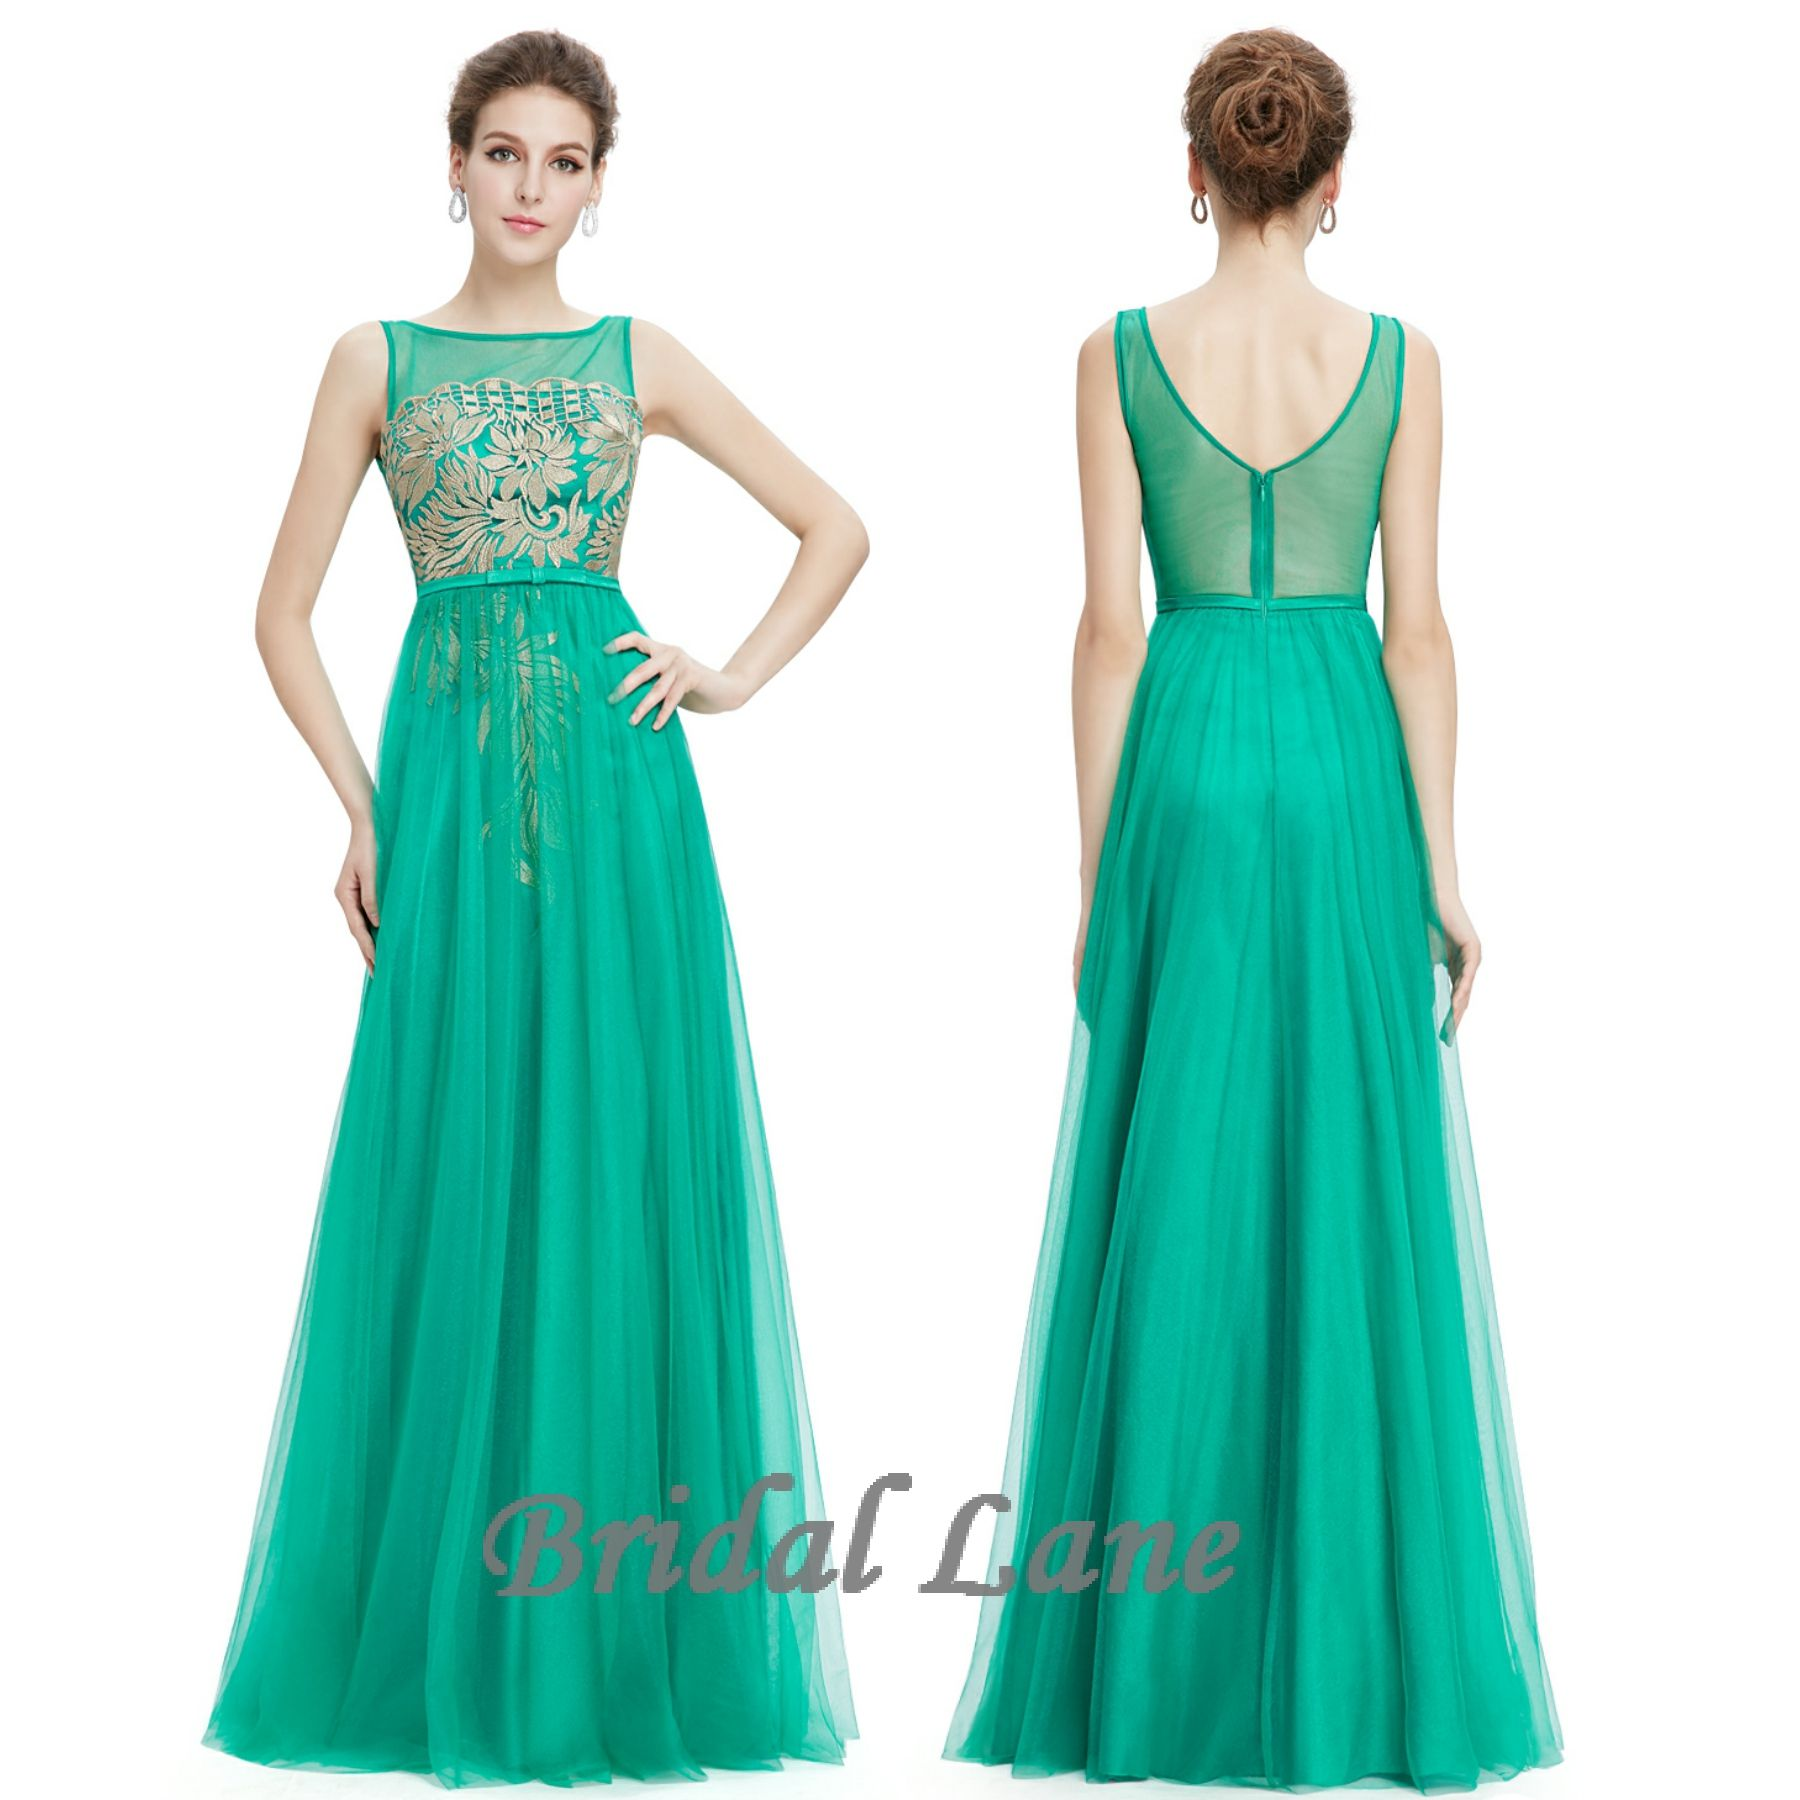 Turquoise evening dresses for matric ball / matric farewell in Cape ...